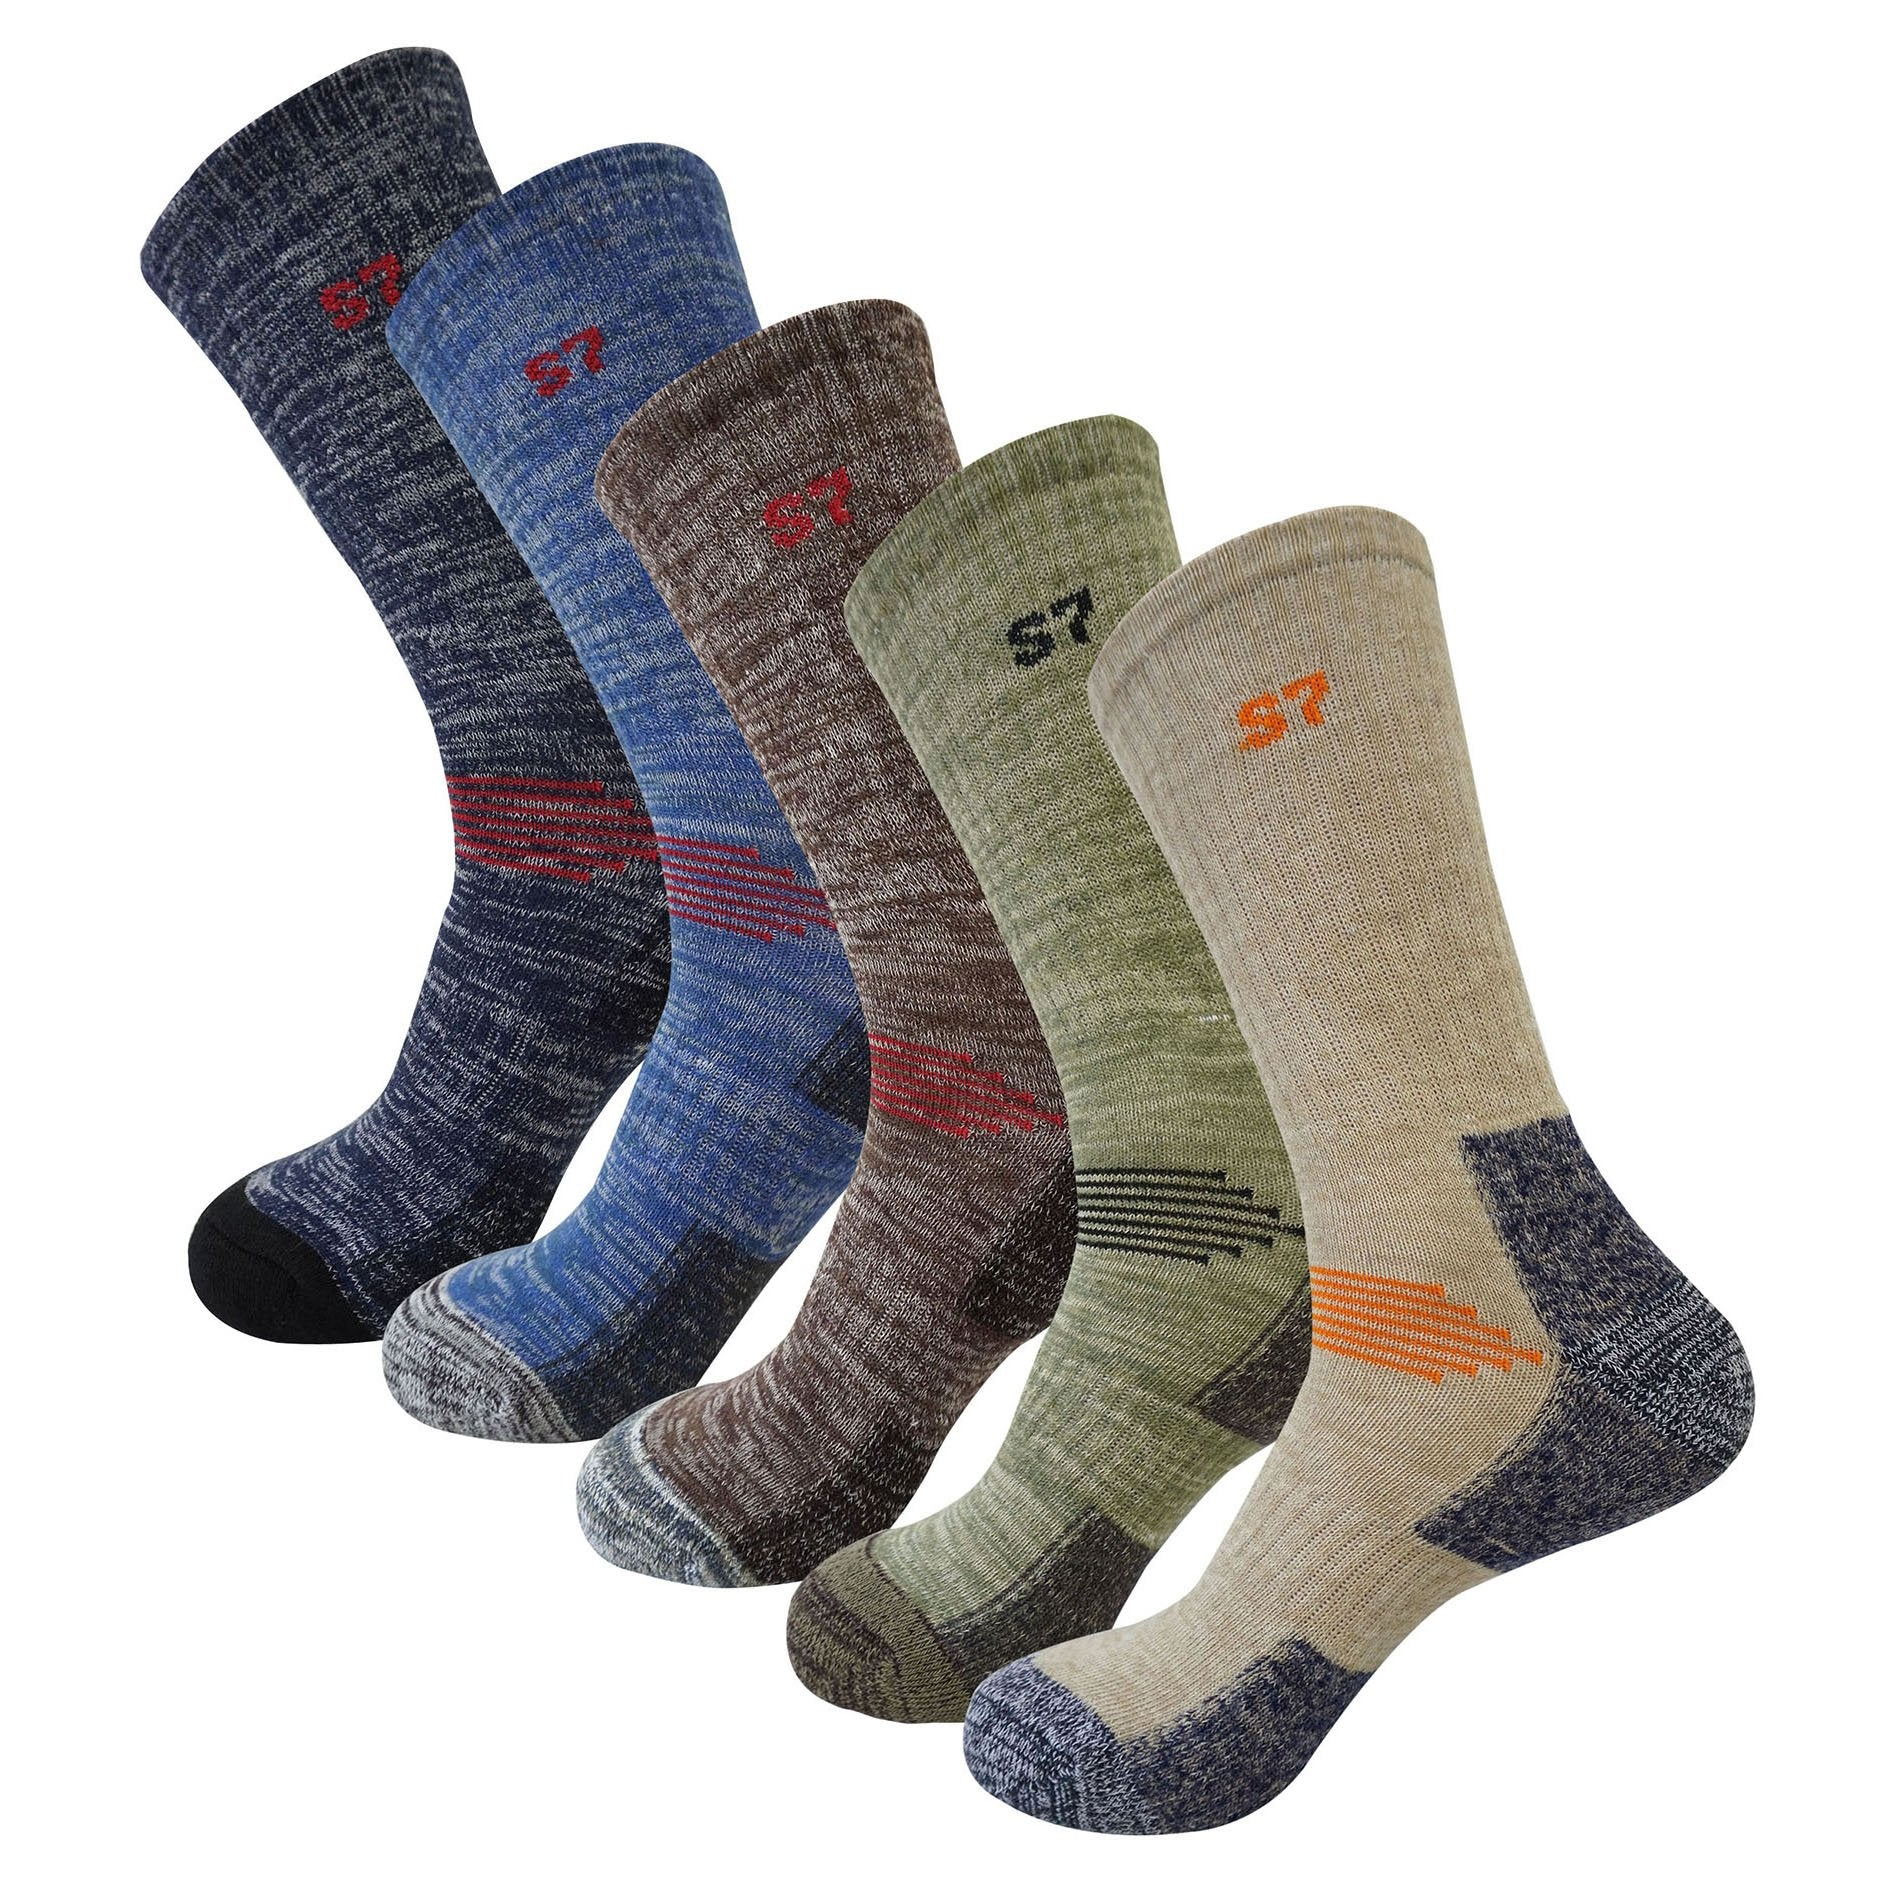 5Pack Men's Multi Performance Cushion Hiking/Outdoor Crew Socks Year Round